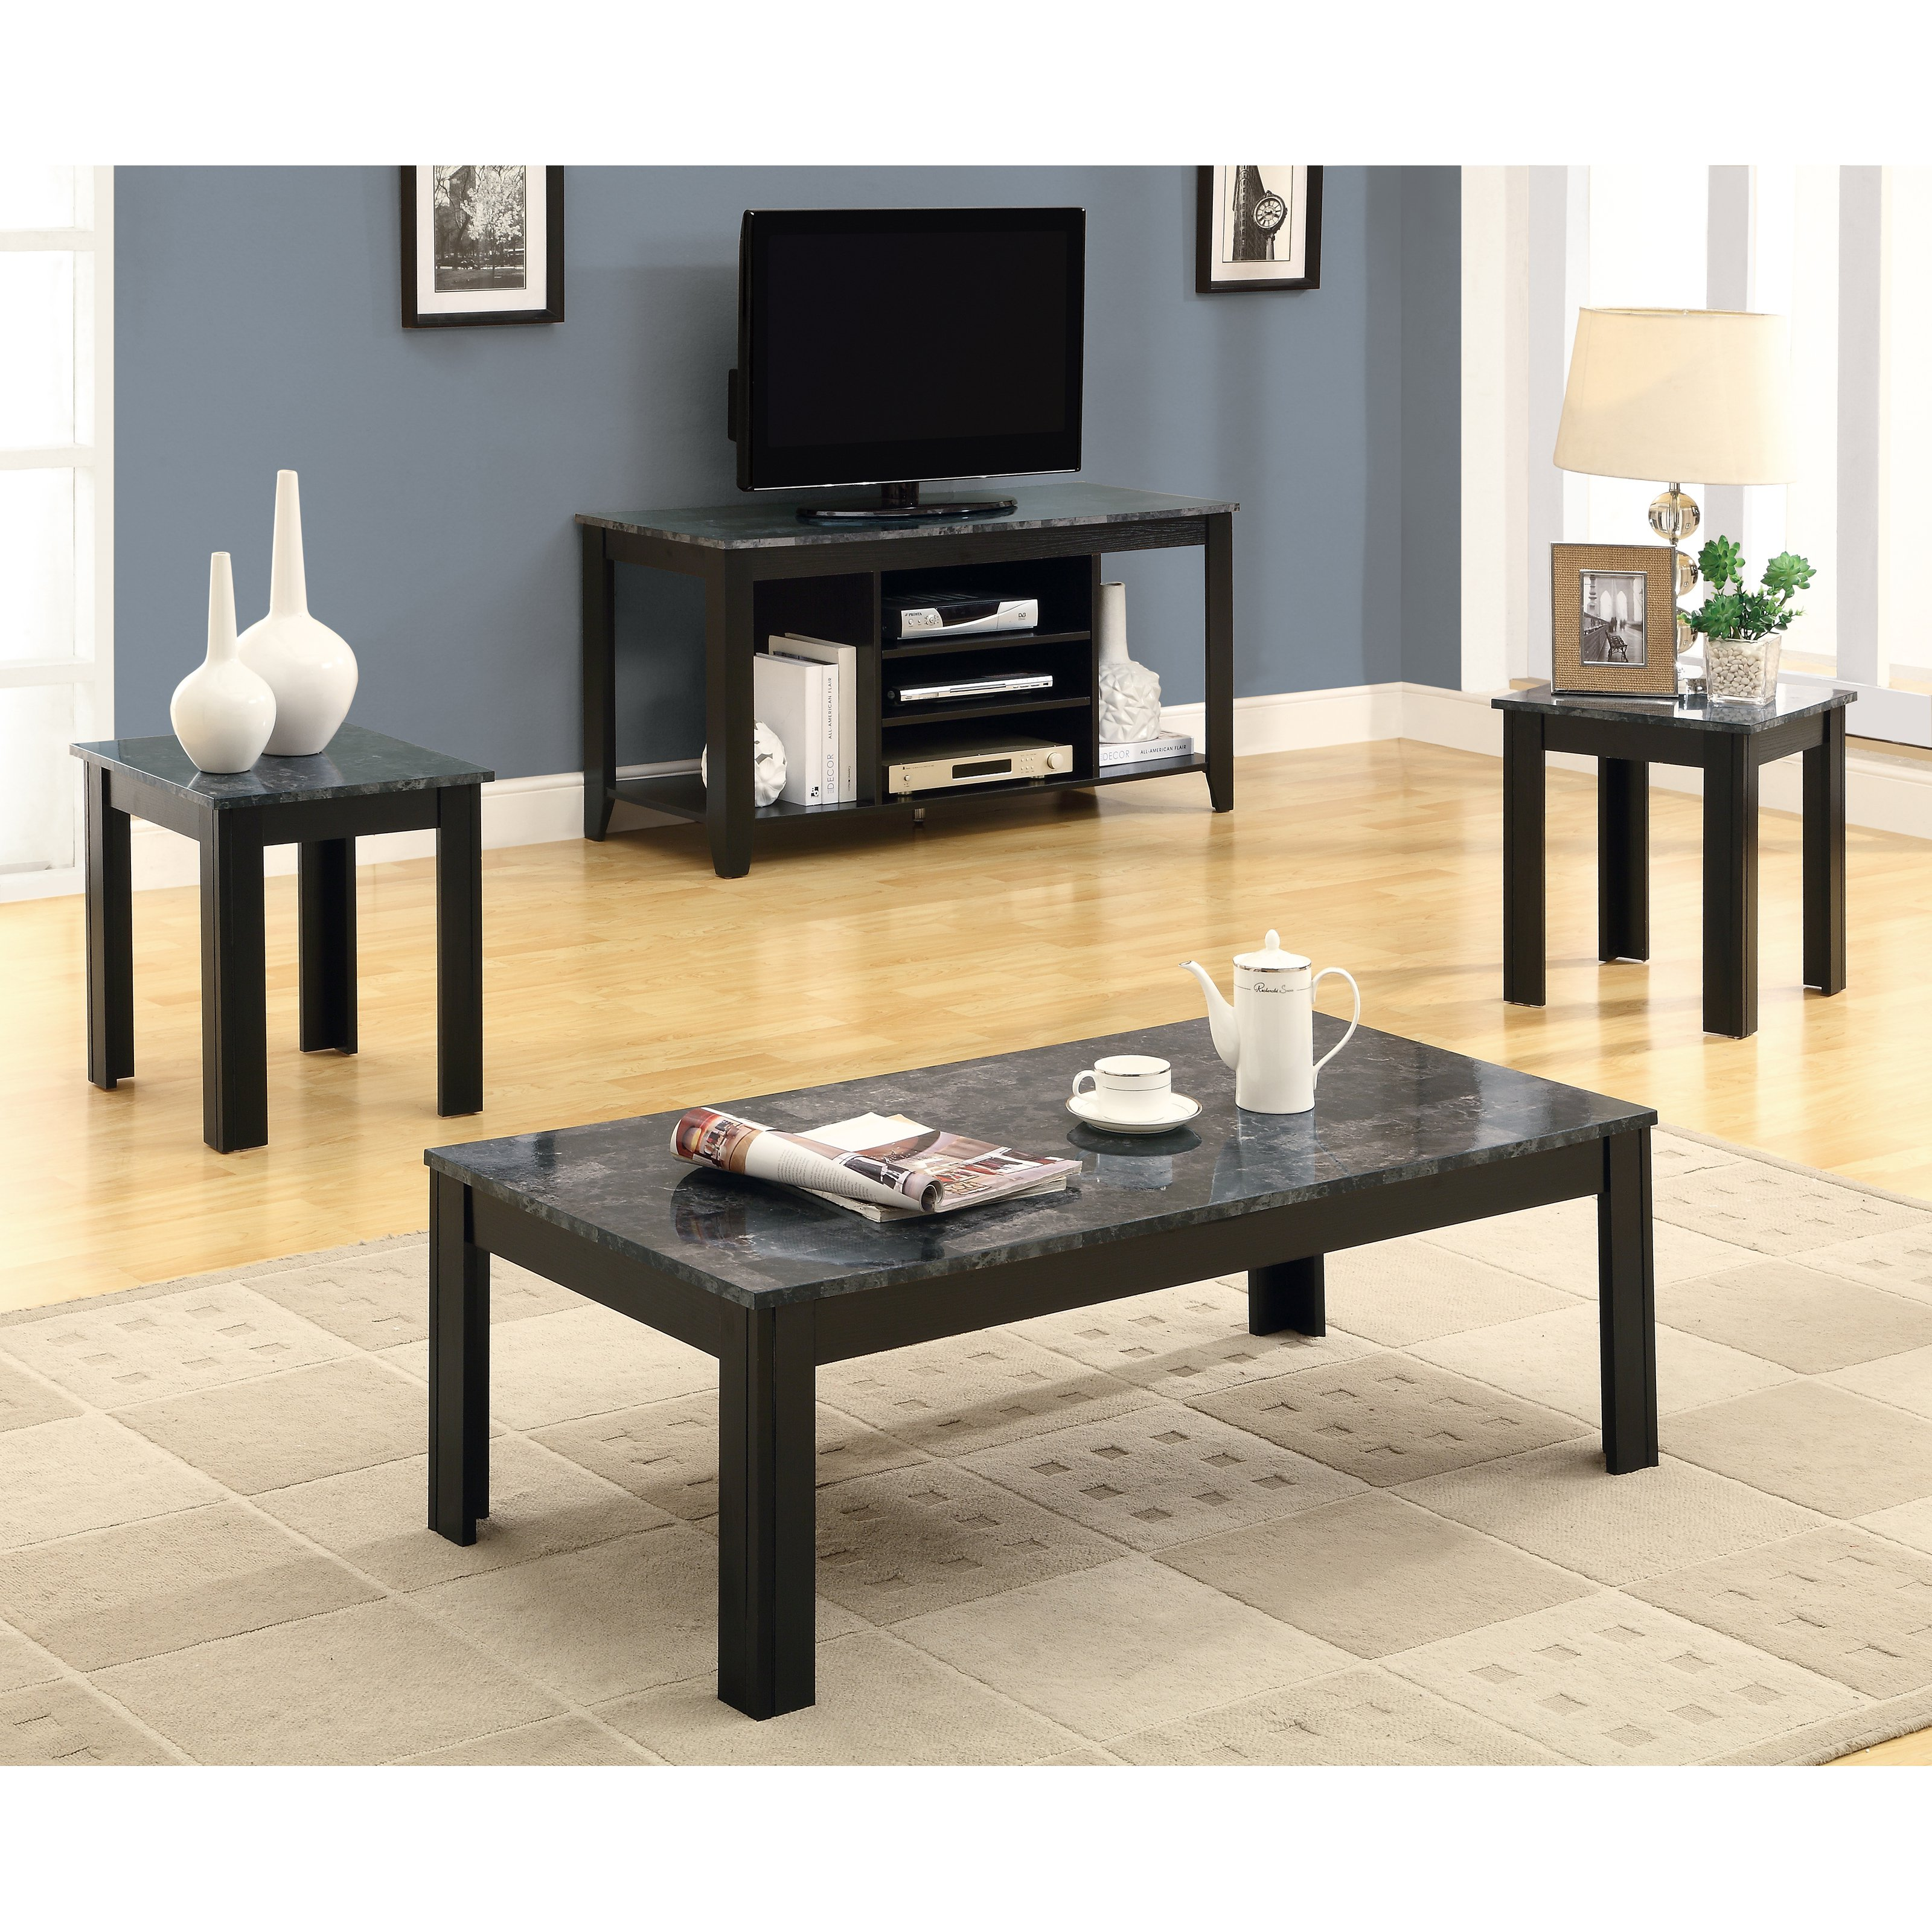 Monarch Specialties Black 3 Piece Coffee Table Set With Gray Faux Marble Top